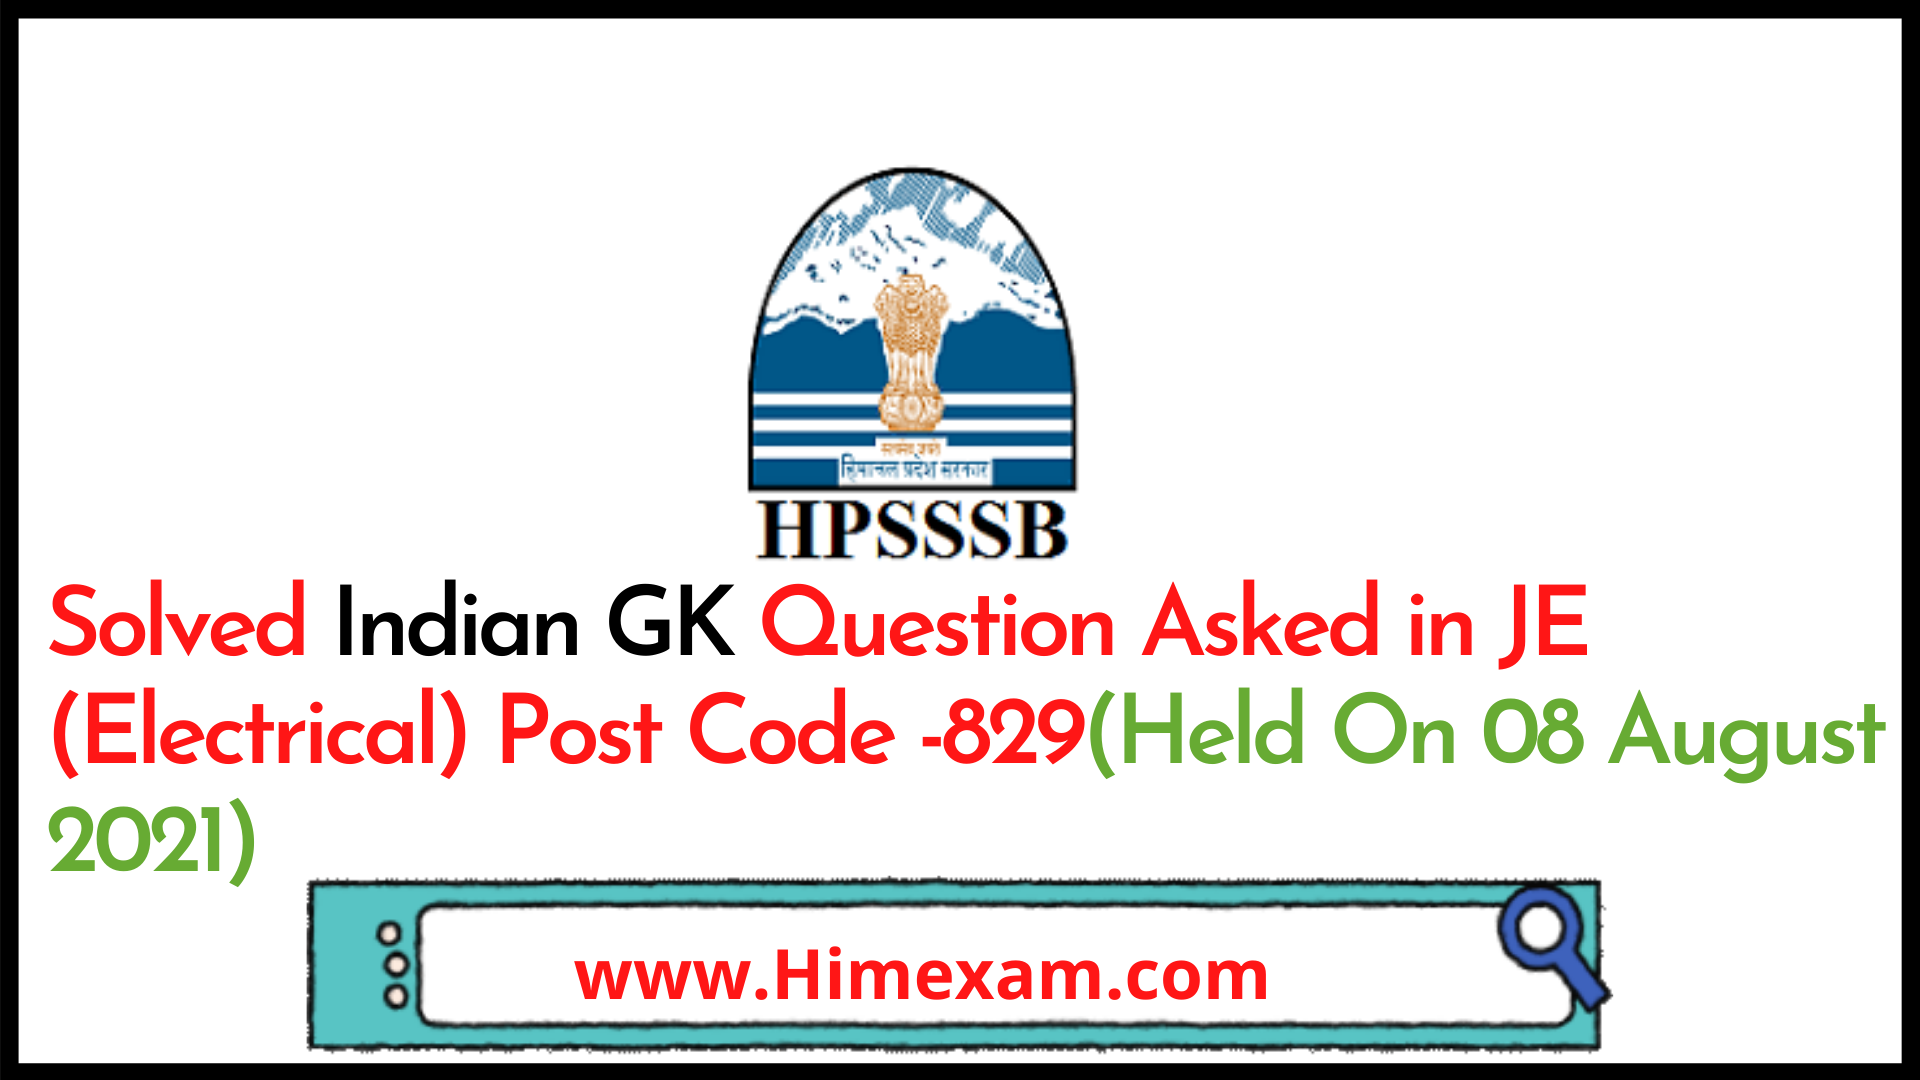 Solved Indian GK Question Asked in JE  (Electrical) Post Code -829